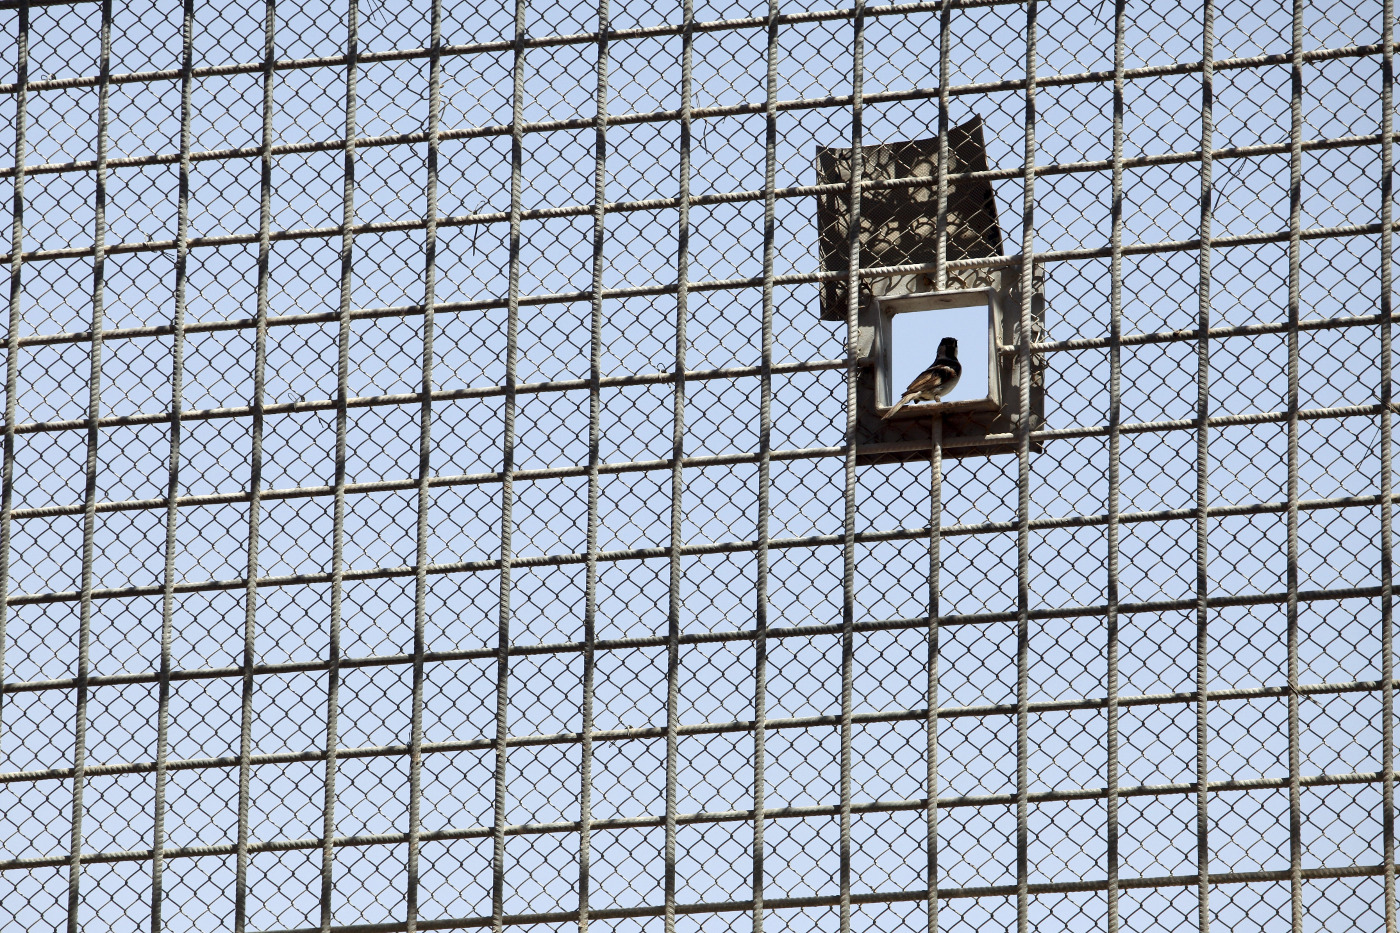 Separated: The humanitarian consequences of solitary